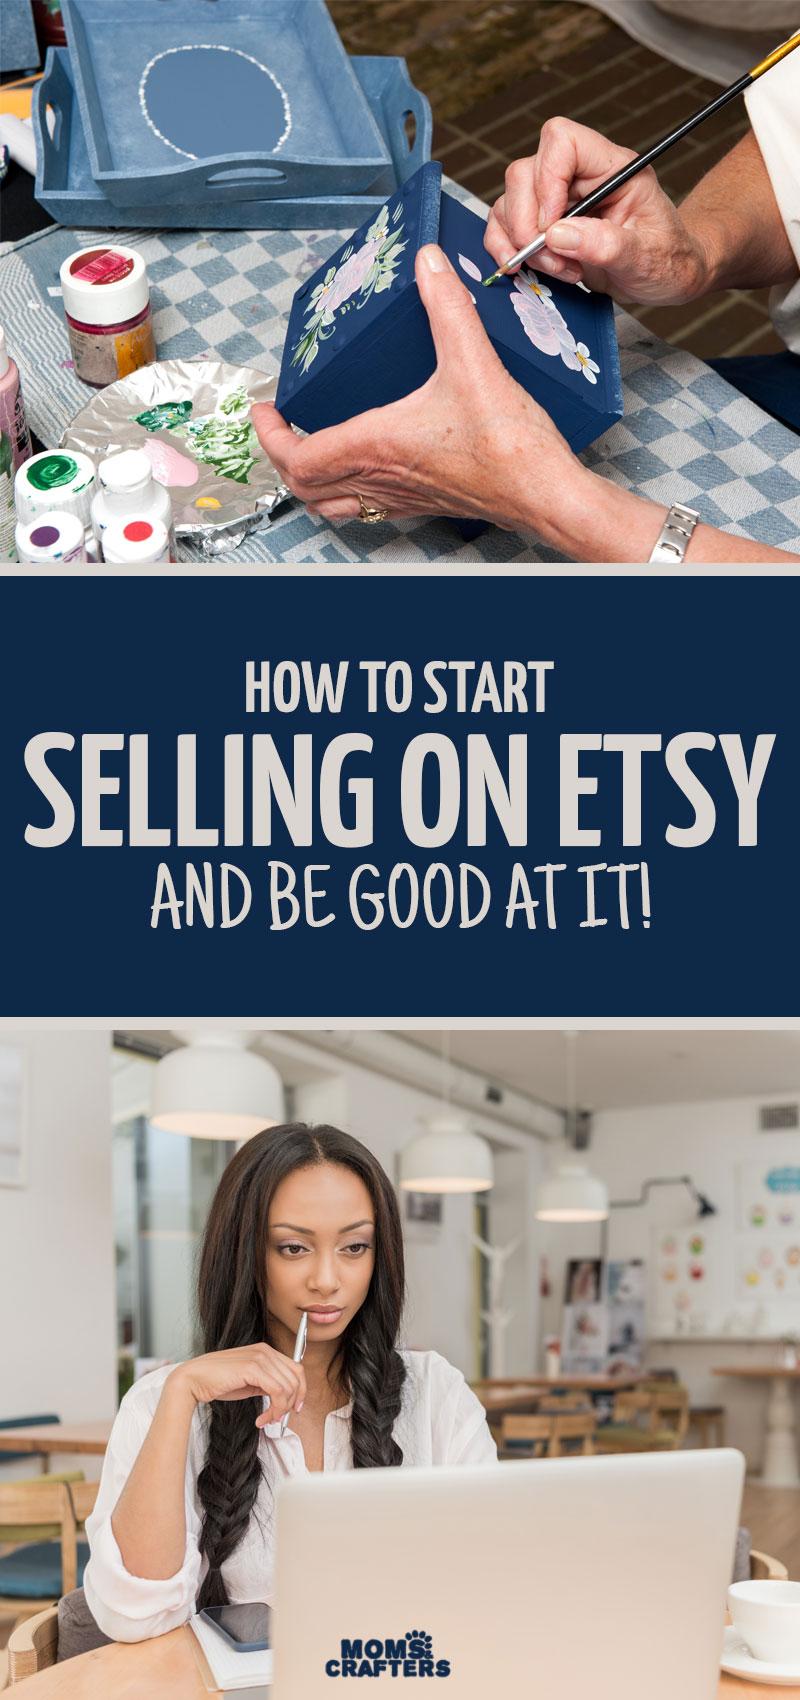 How to start selling online and be good at it! These Selling on Etsy tips and products ideas will help you earn some extra cash and set up small businesses. I hope these posts and articles help you out!